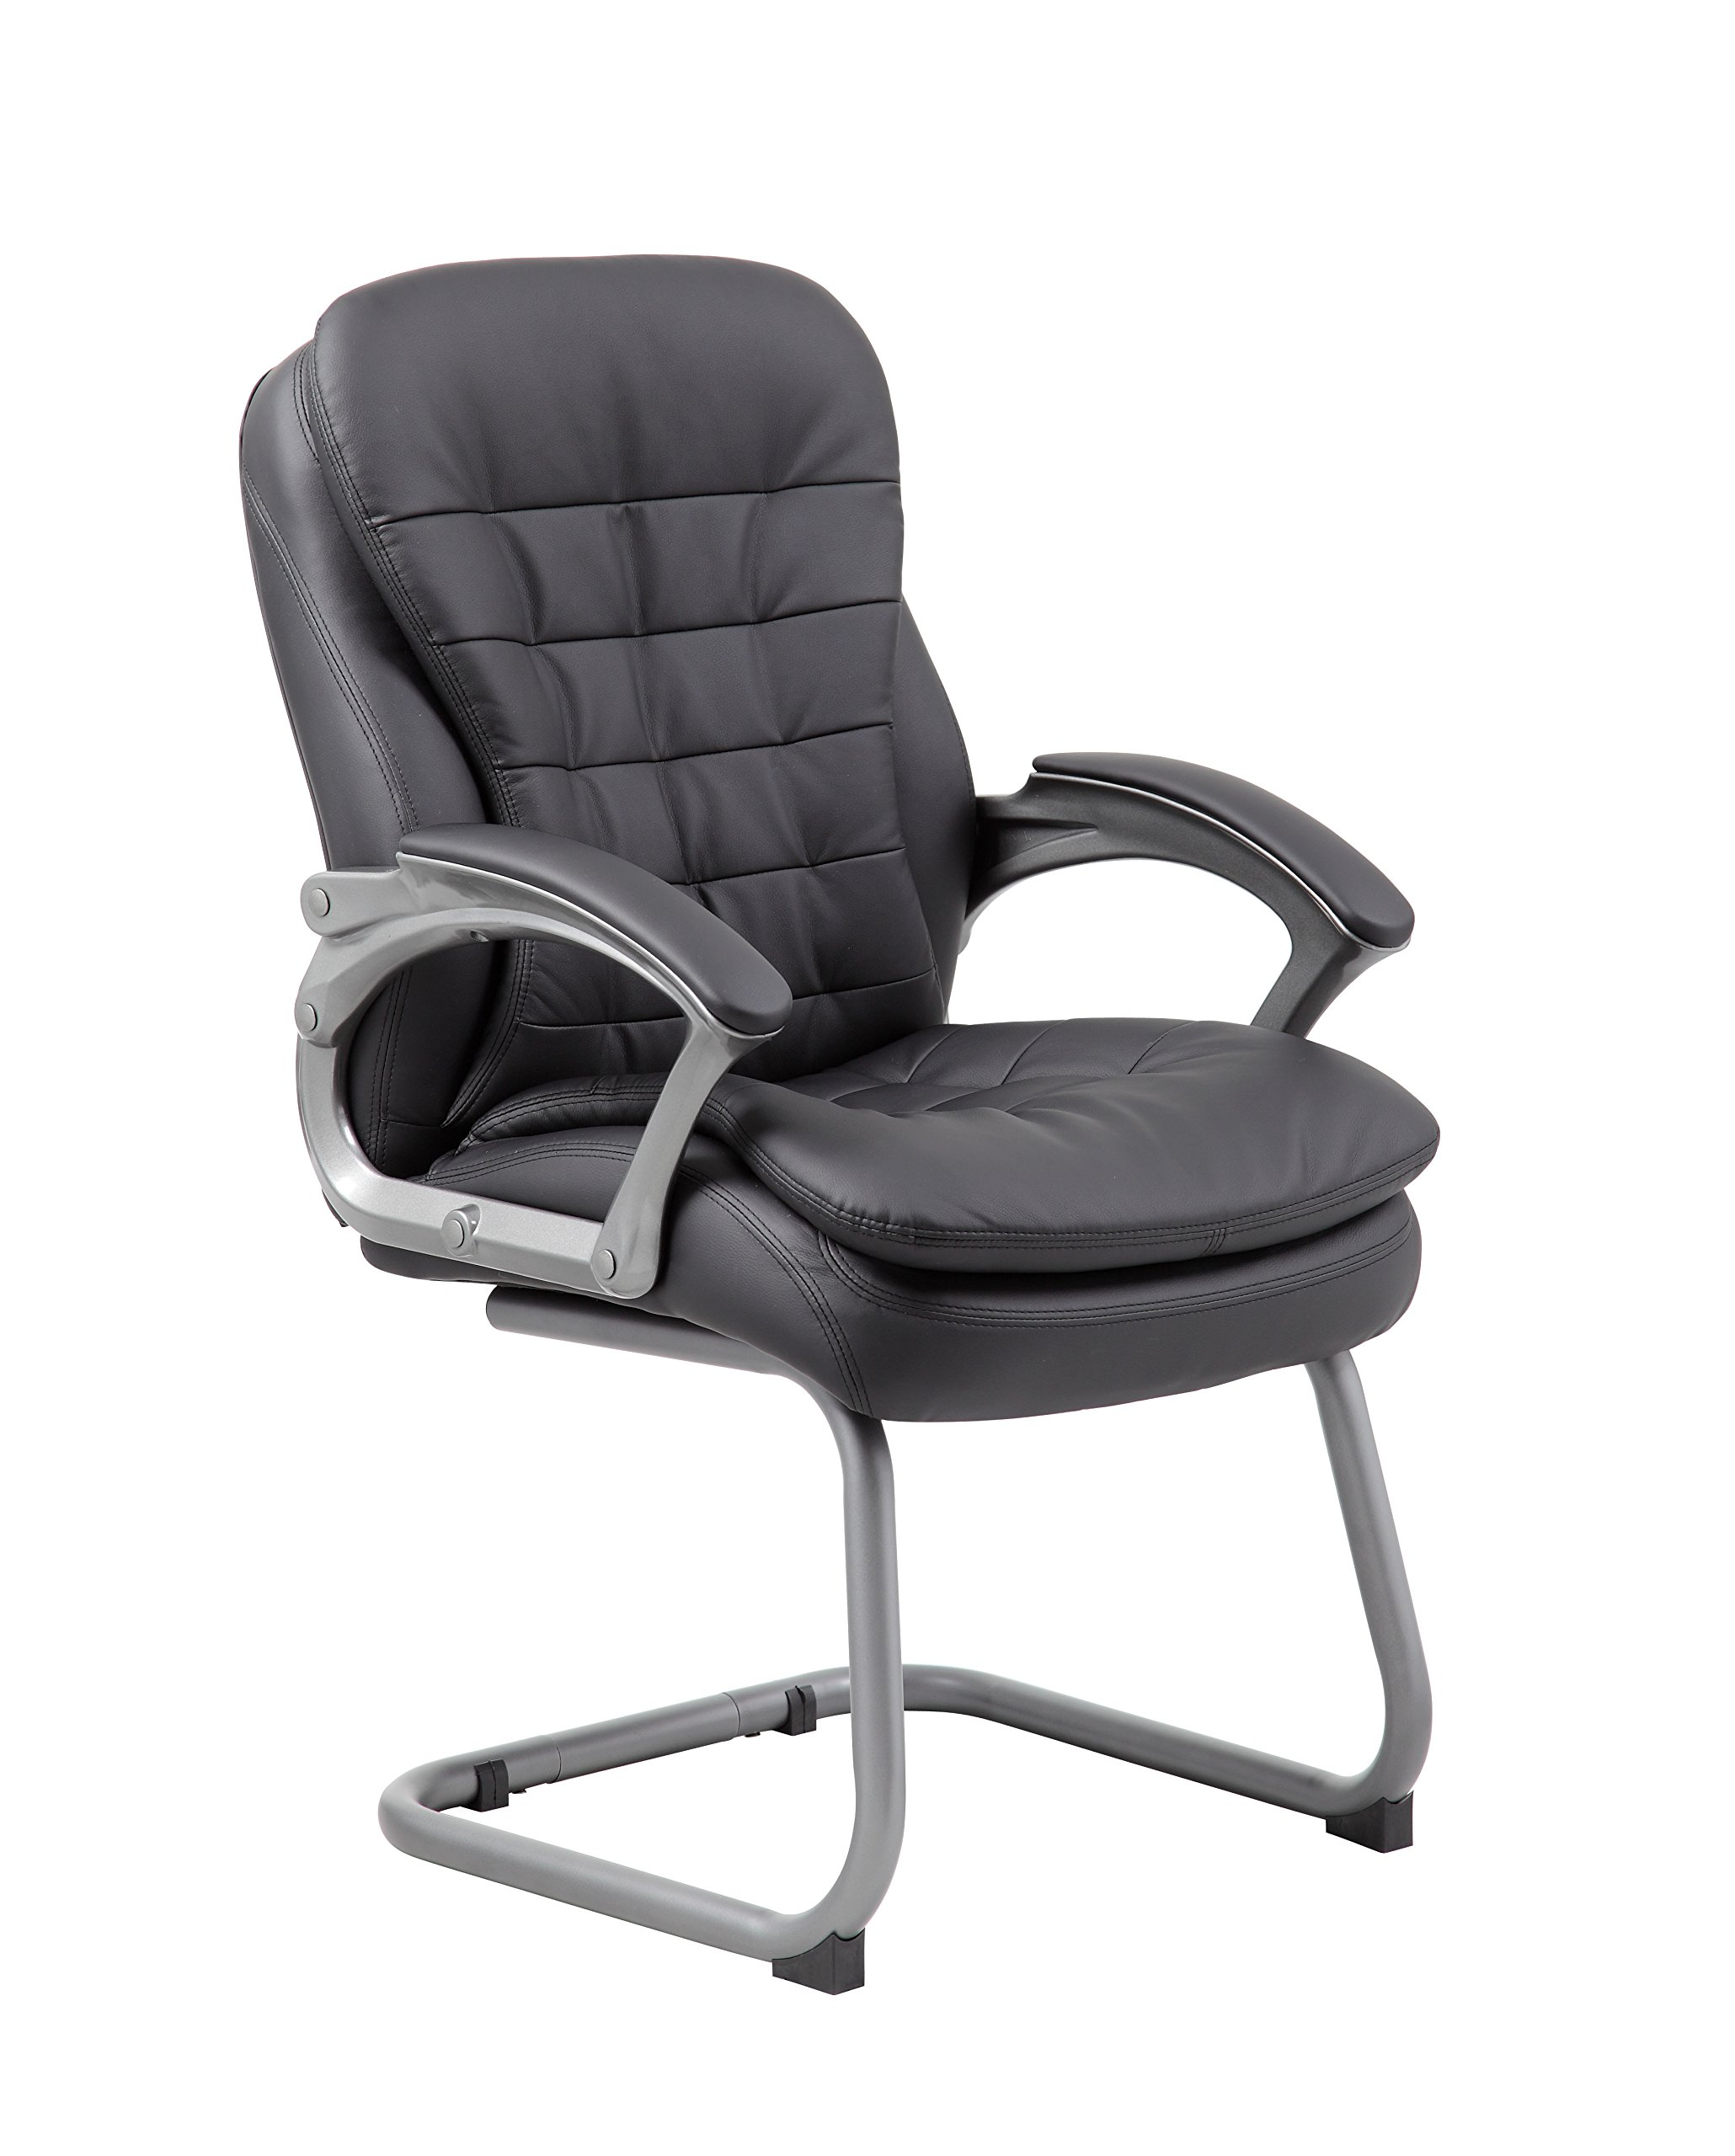 Boss Office Products B9339 Executive Pillow Top Guest Chair in Black